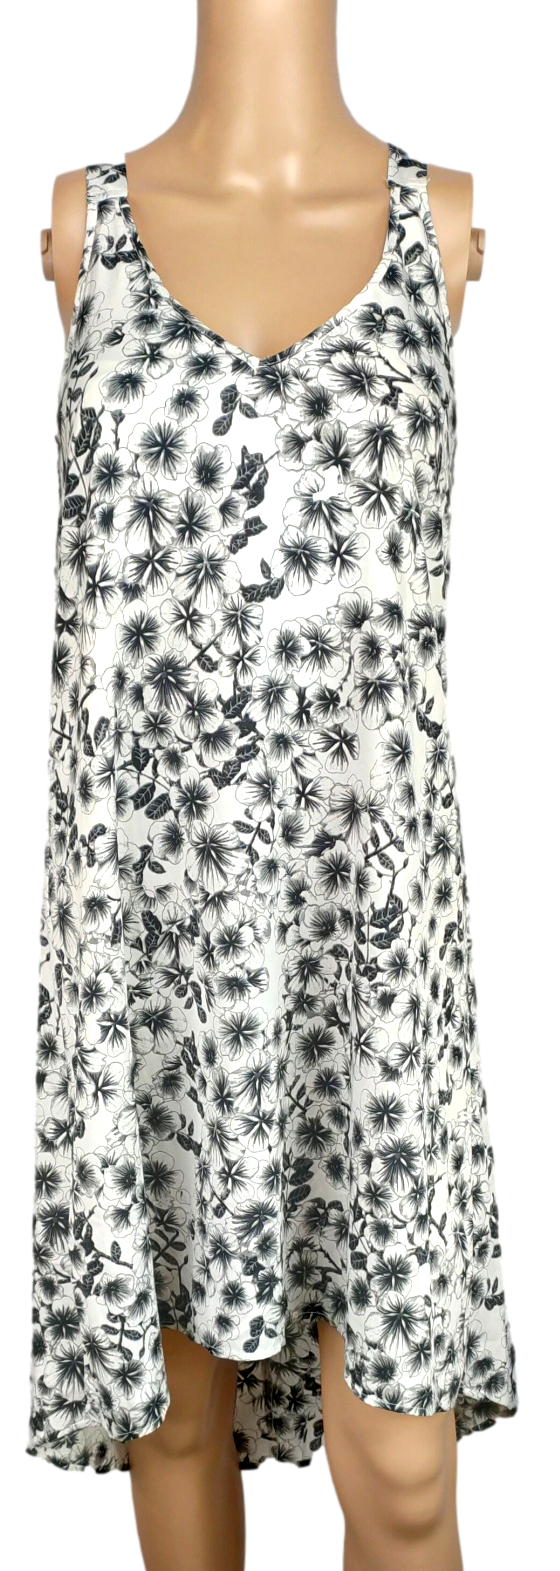 Robe H&M -Taille 34